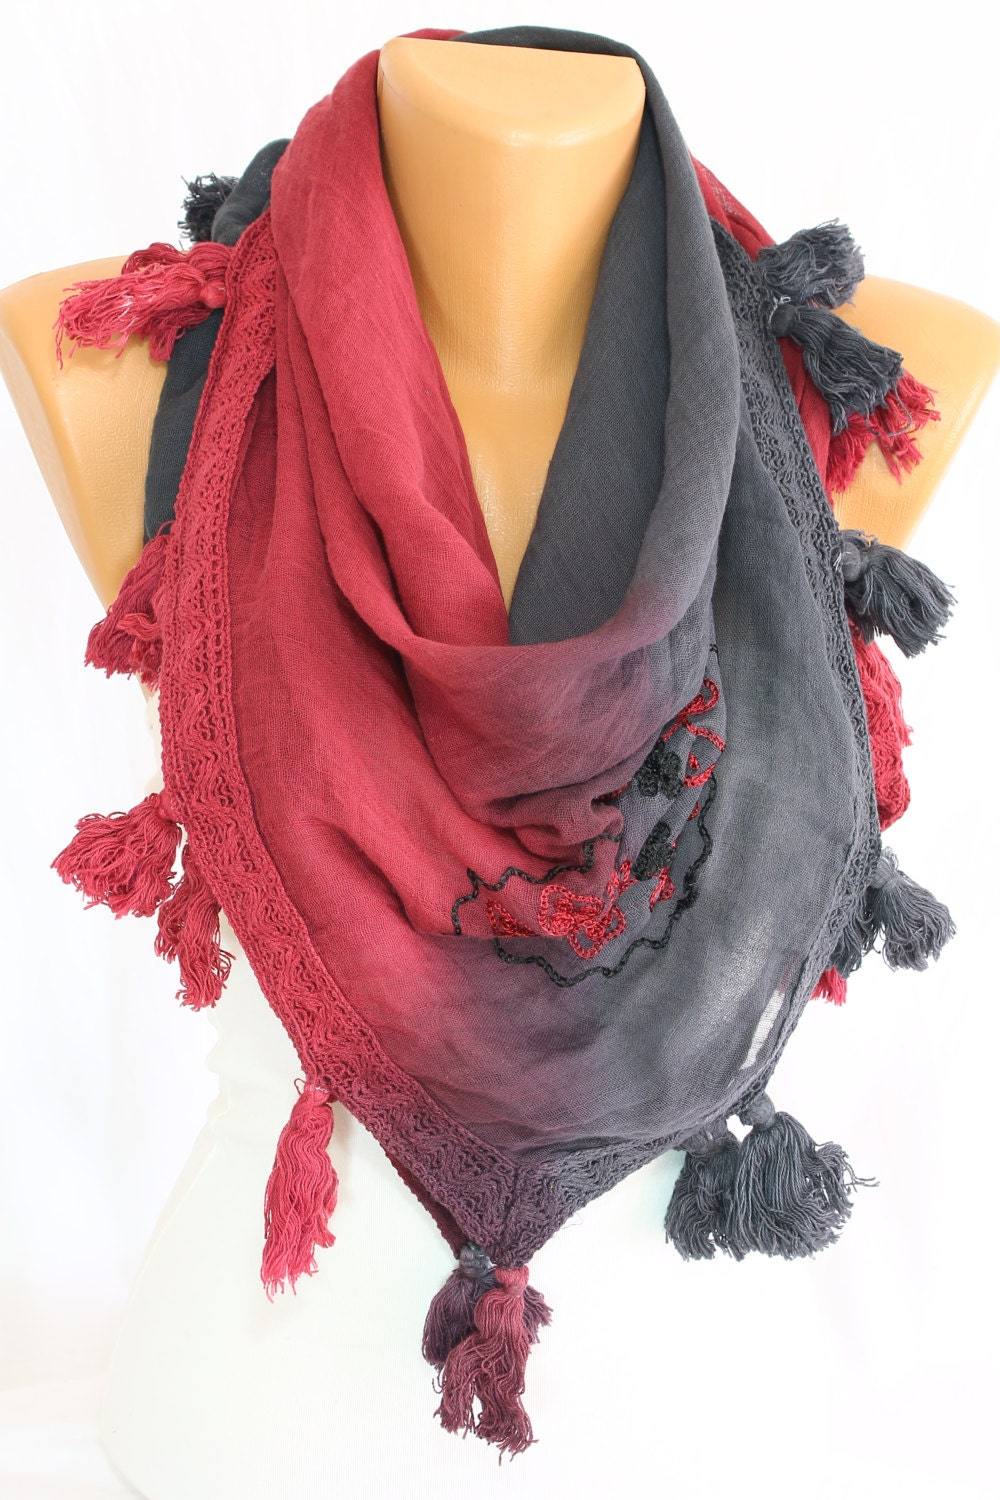 Shop for womens maroon scarf online at Target. Free shipping on purchases over $35 and save 5% every day with your Target REDcard.